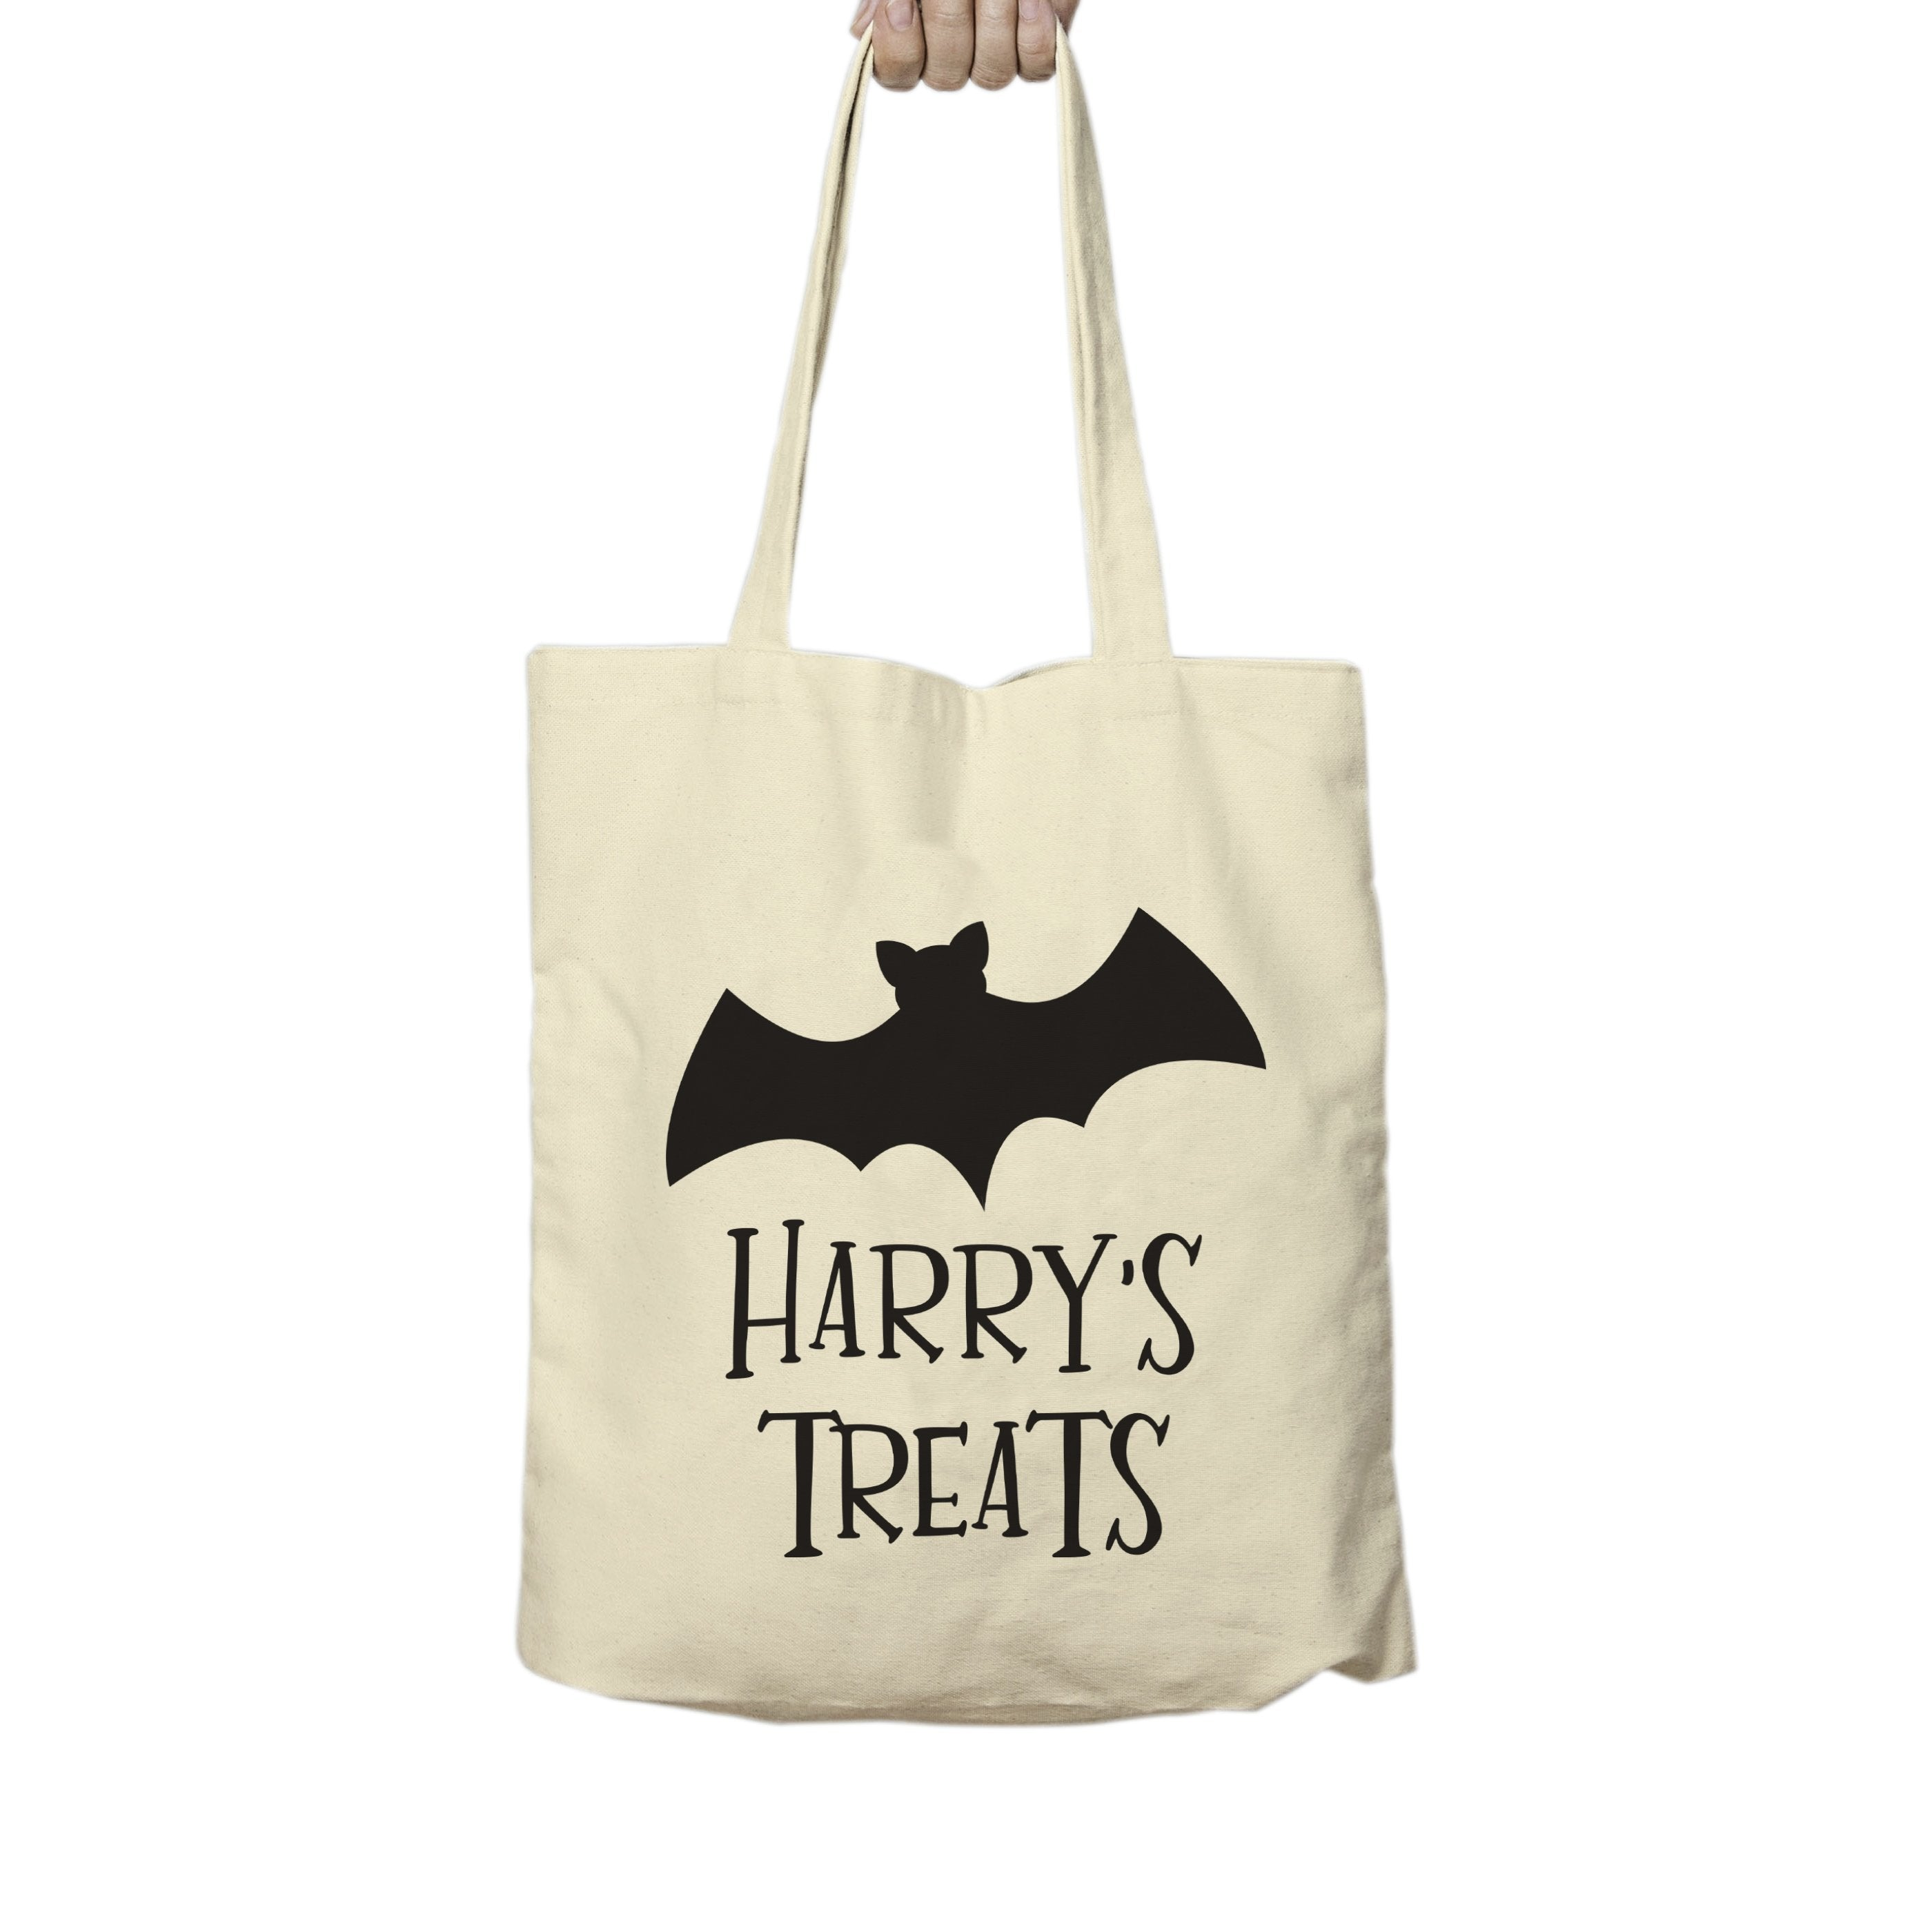 Bat Halloween Treats Tote Bag - Shop Personalised Gifts